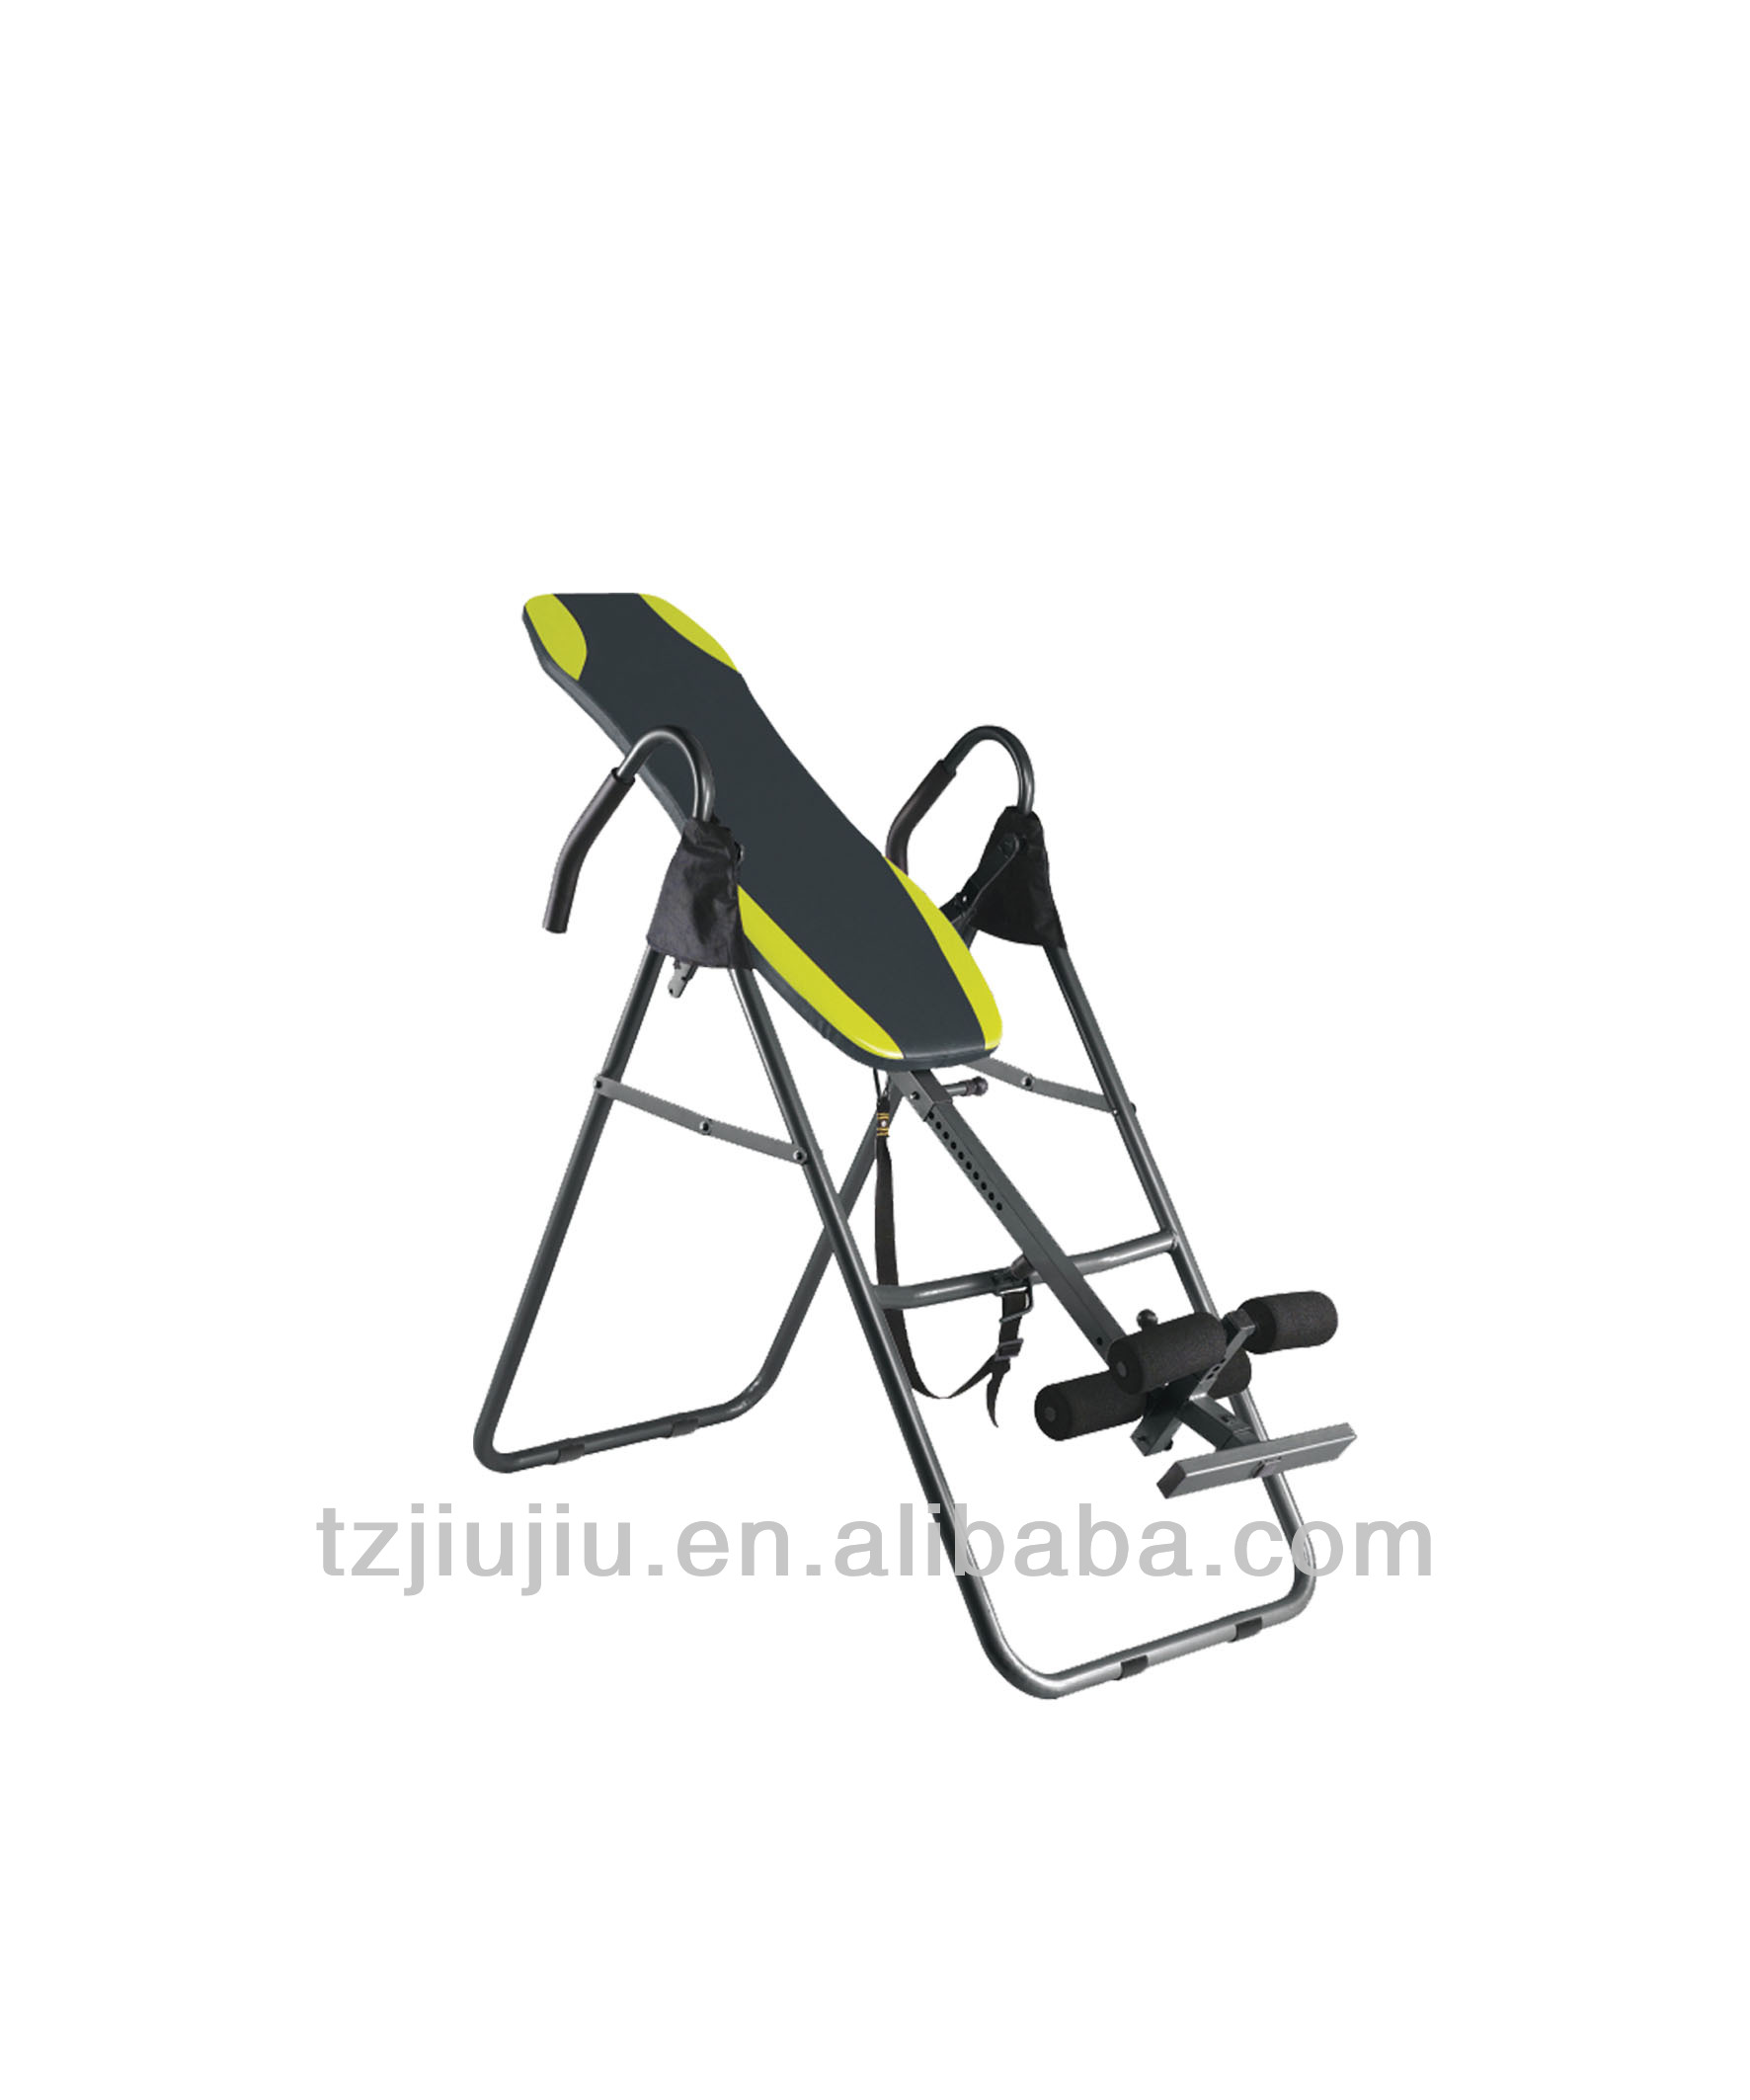 Inversion Table Inversion Table Suppliers and Manufacturers at